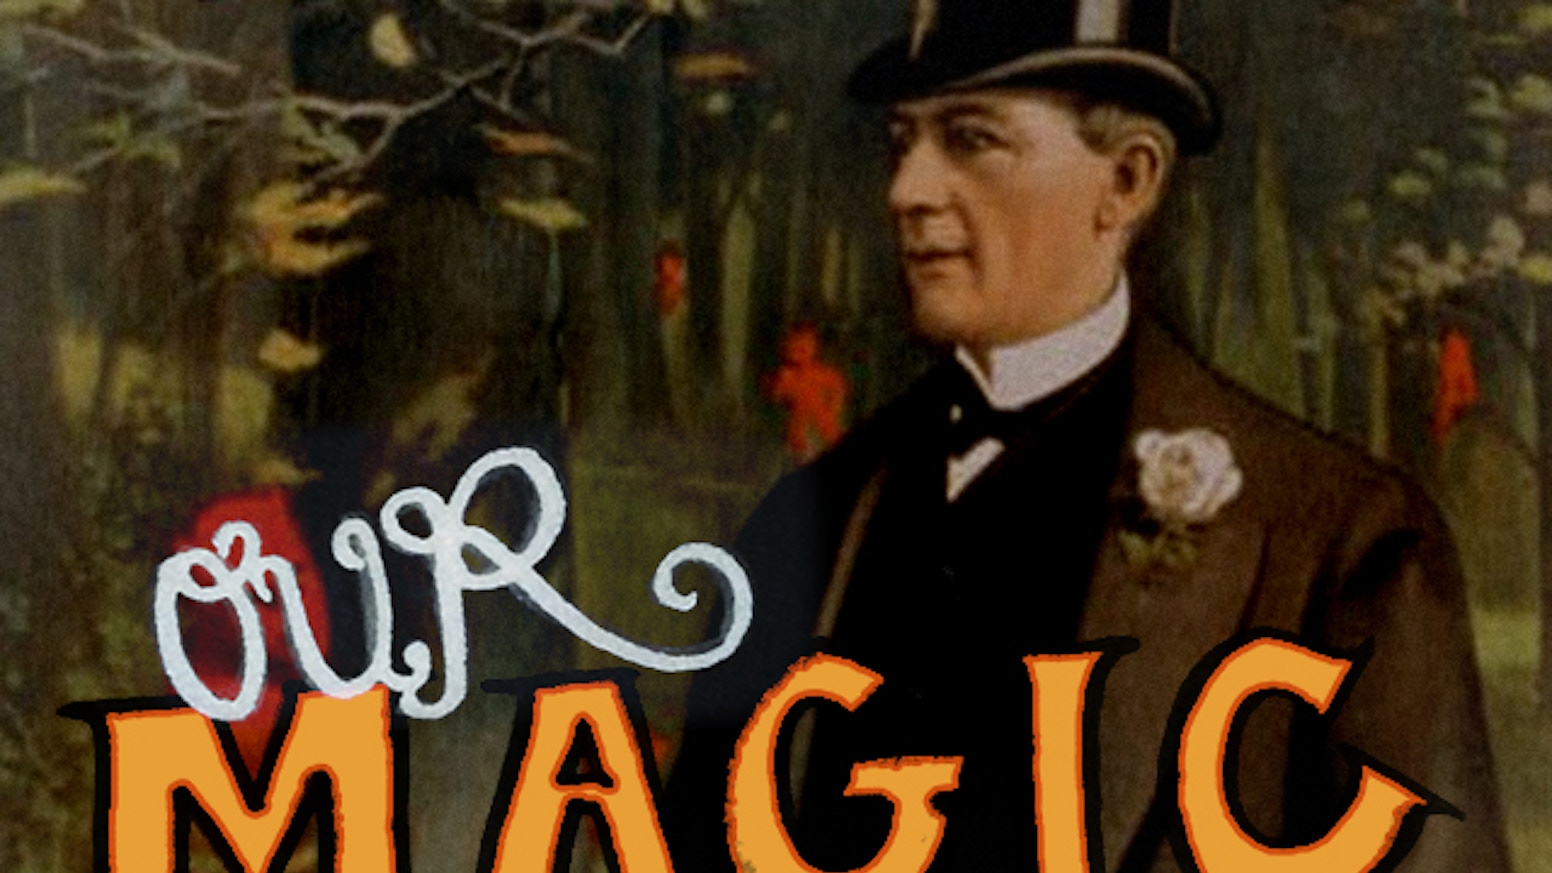 A new documentary revealing the secret world of magic & magicians as told by the finest thinkers, creators and performers of the art.